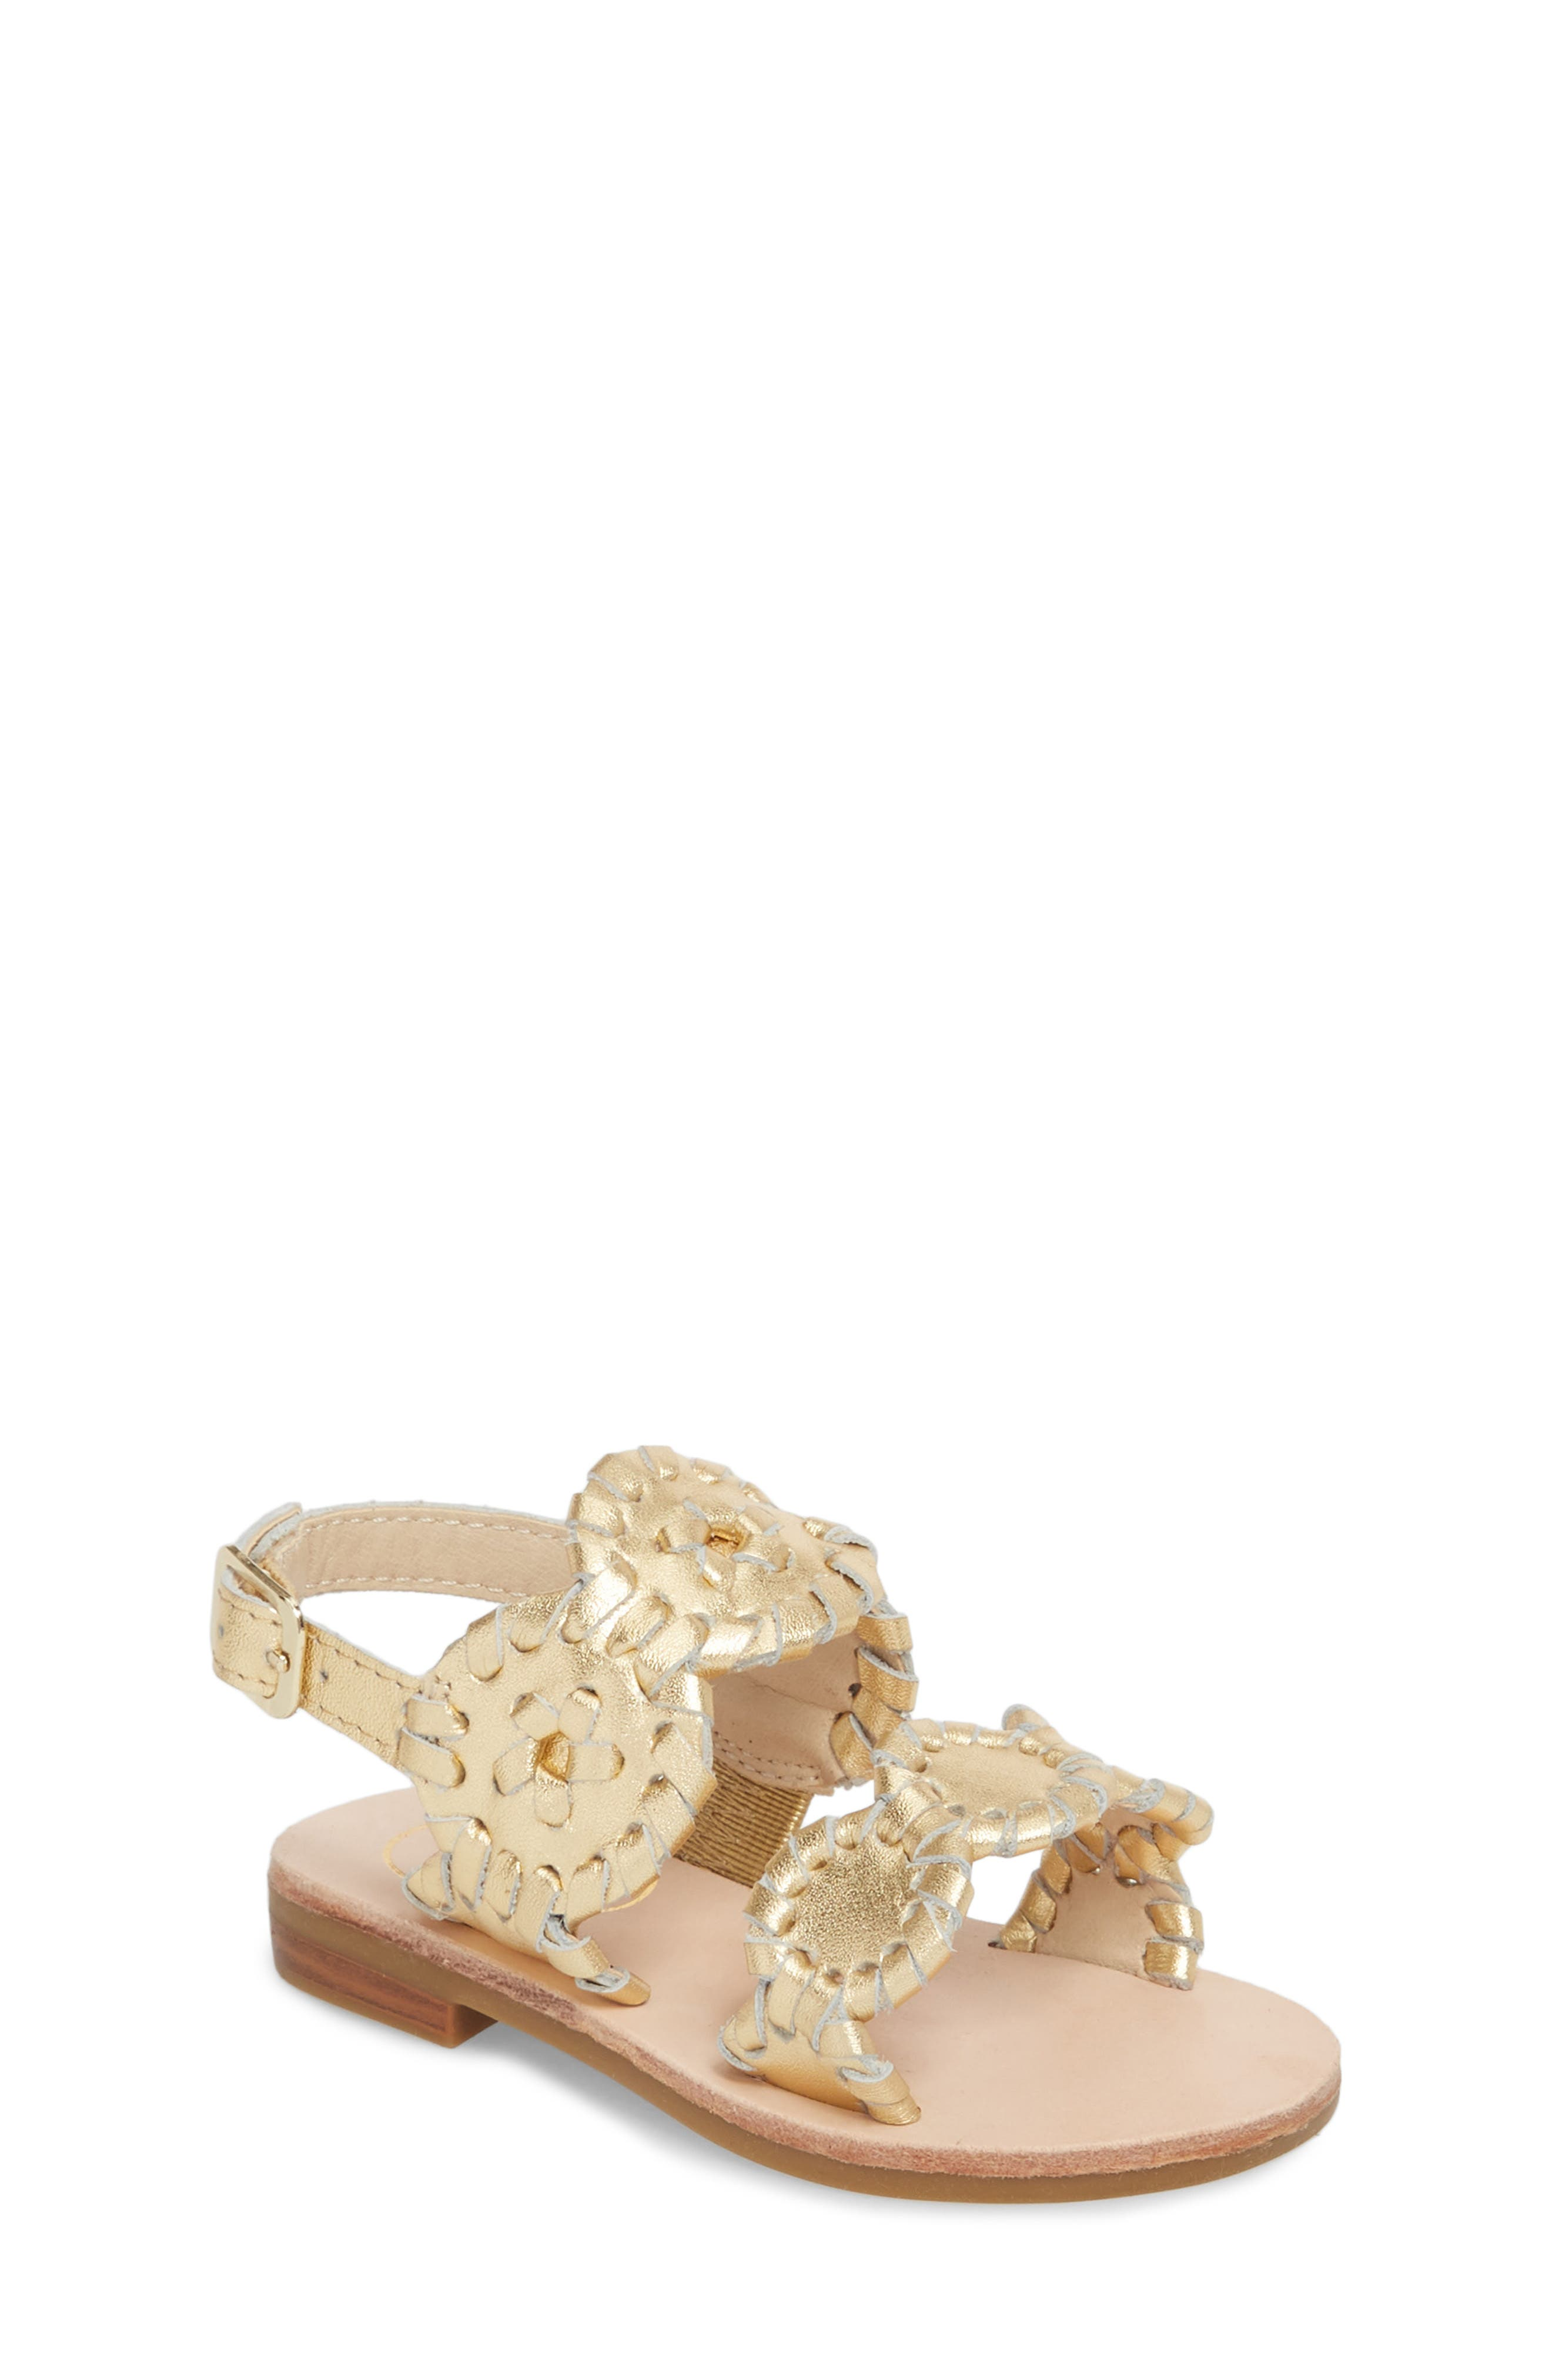 Little Miss Lauren Sandal,                         Main,                         color, GOLD LEATHER